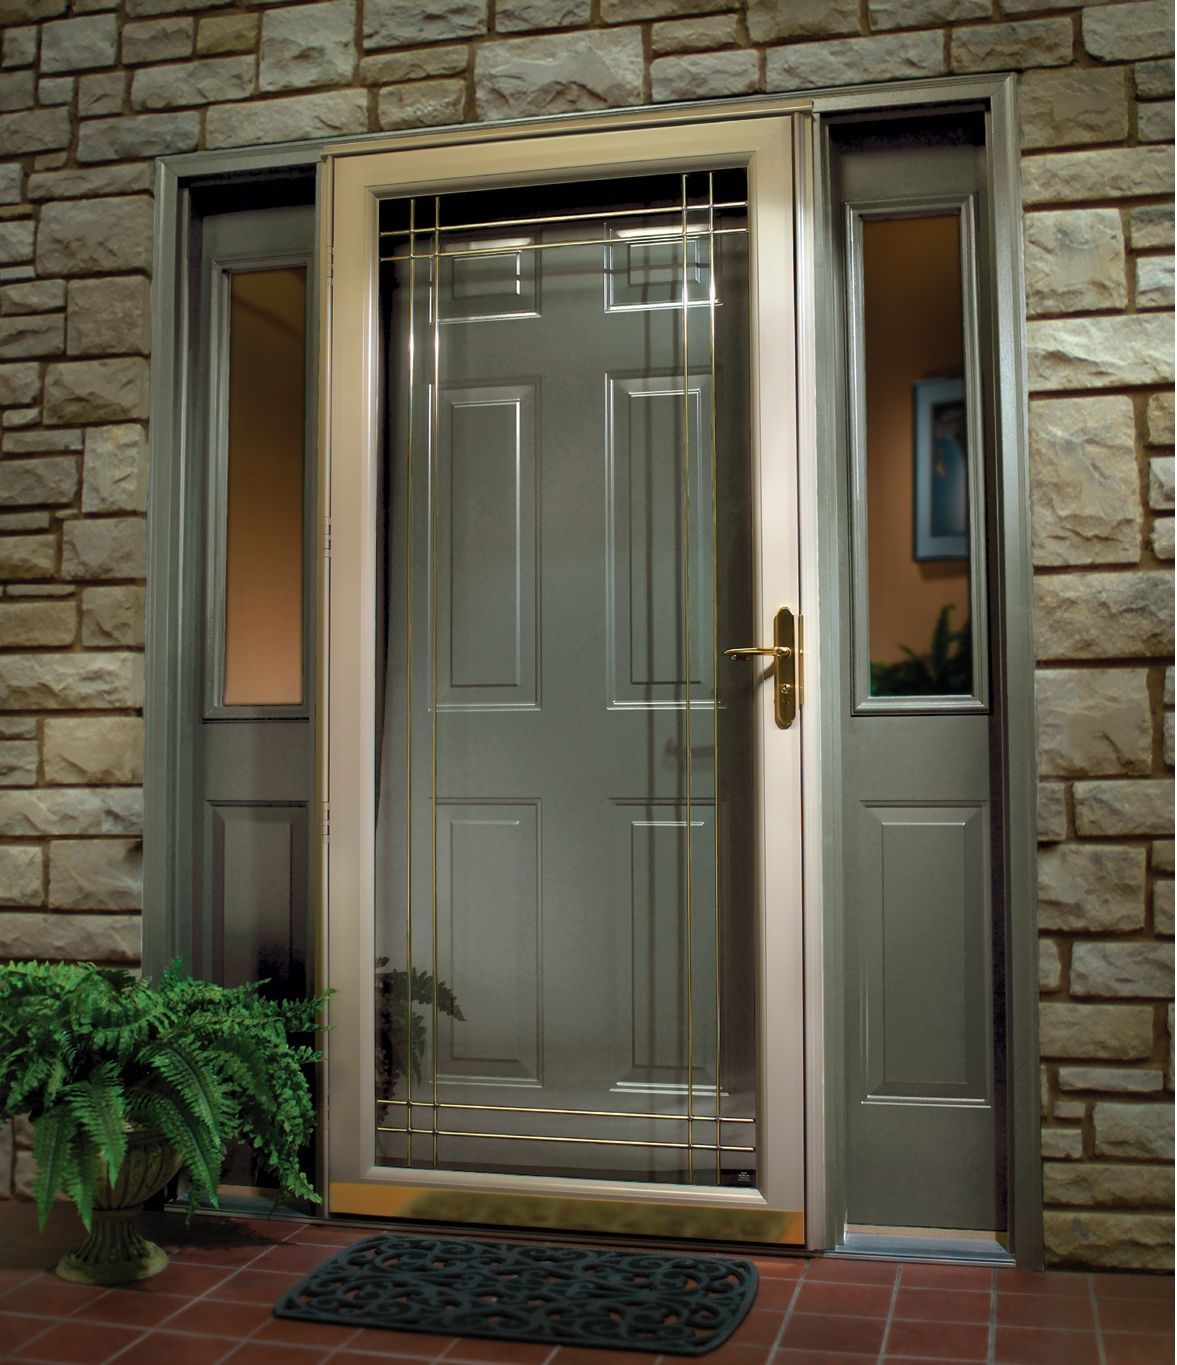 exterior doors for homes front door ideas front entry door - Entrance Doors Designs